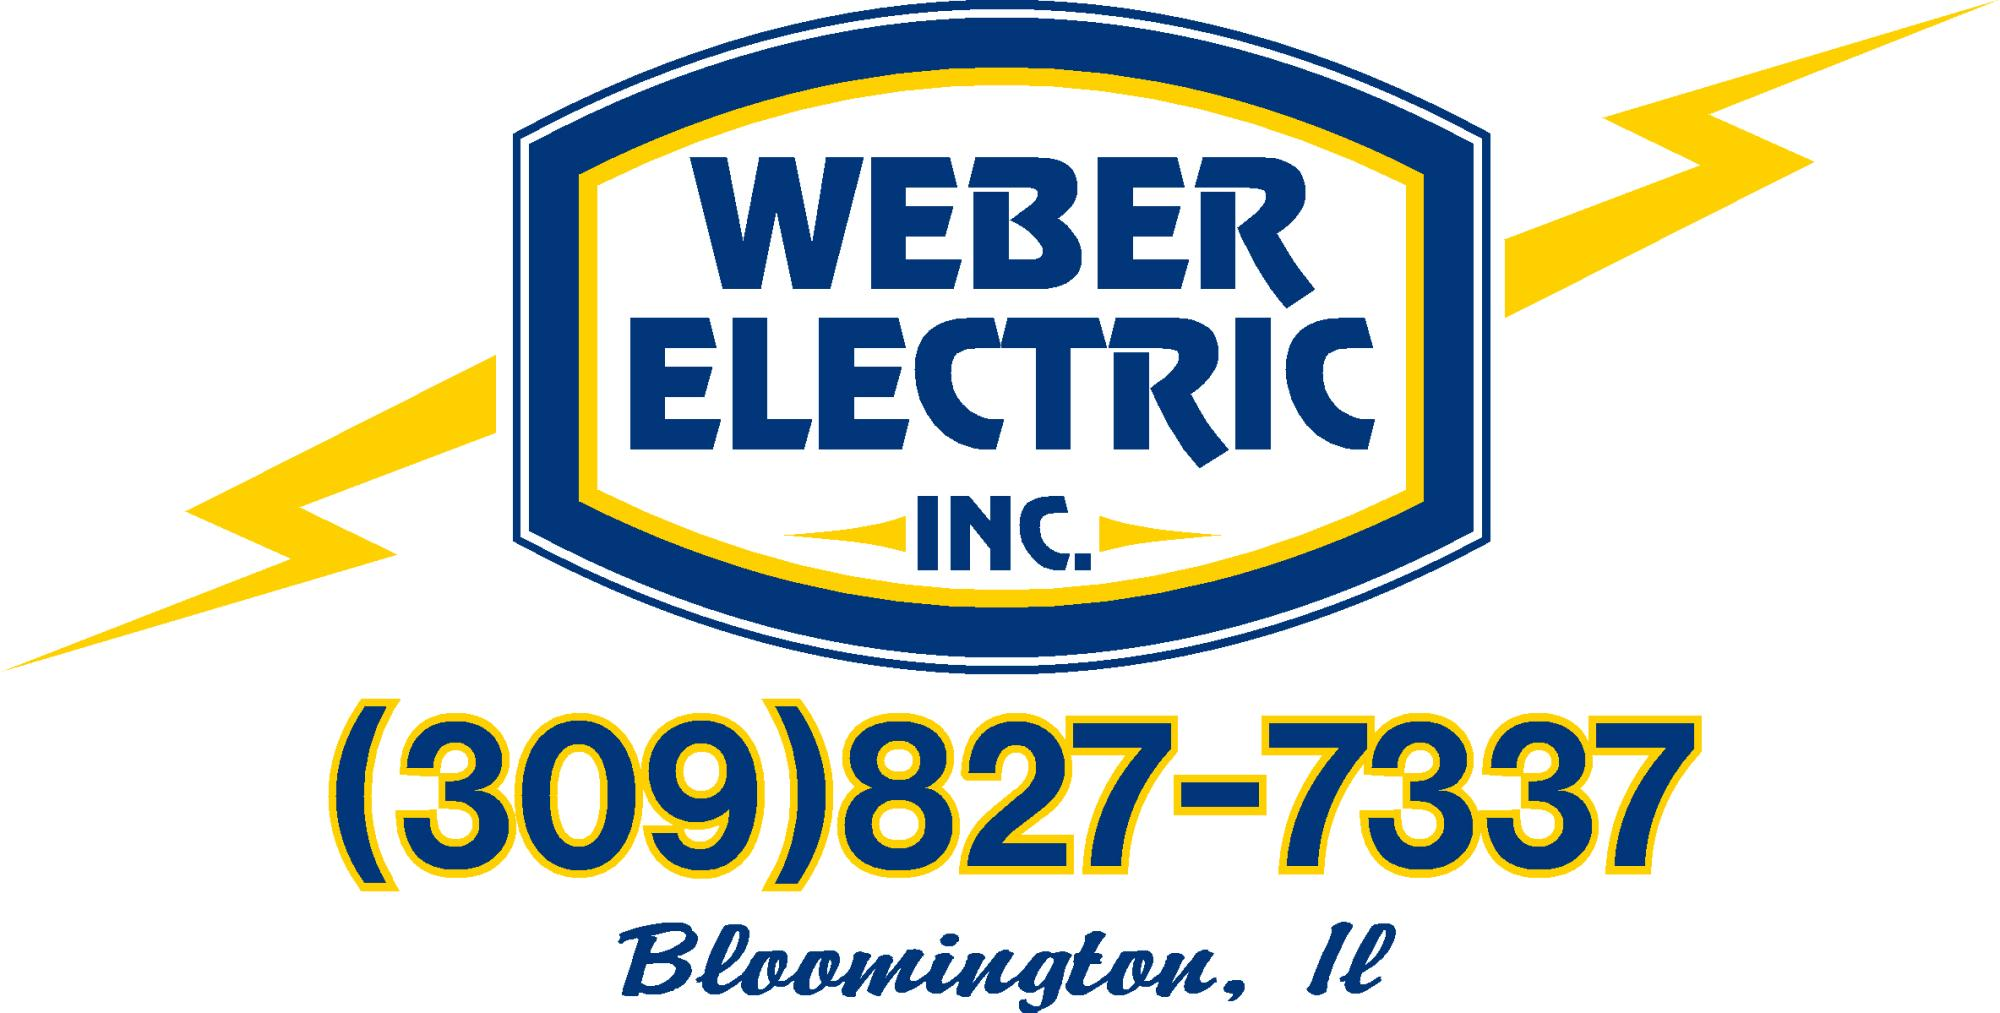 WEBER_ELECTRIC_INC_FULL_LOGO.jpg